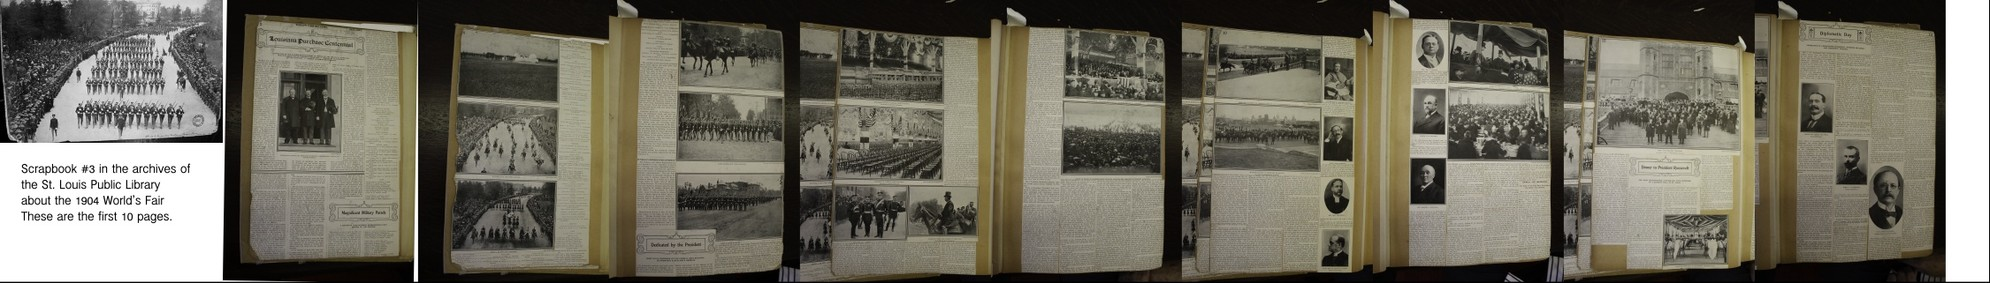 Scrapbook of the 1904 World's Fair - from St. Louis Library